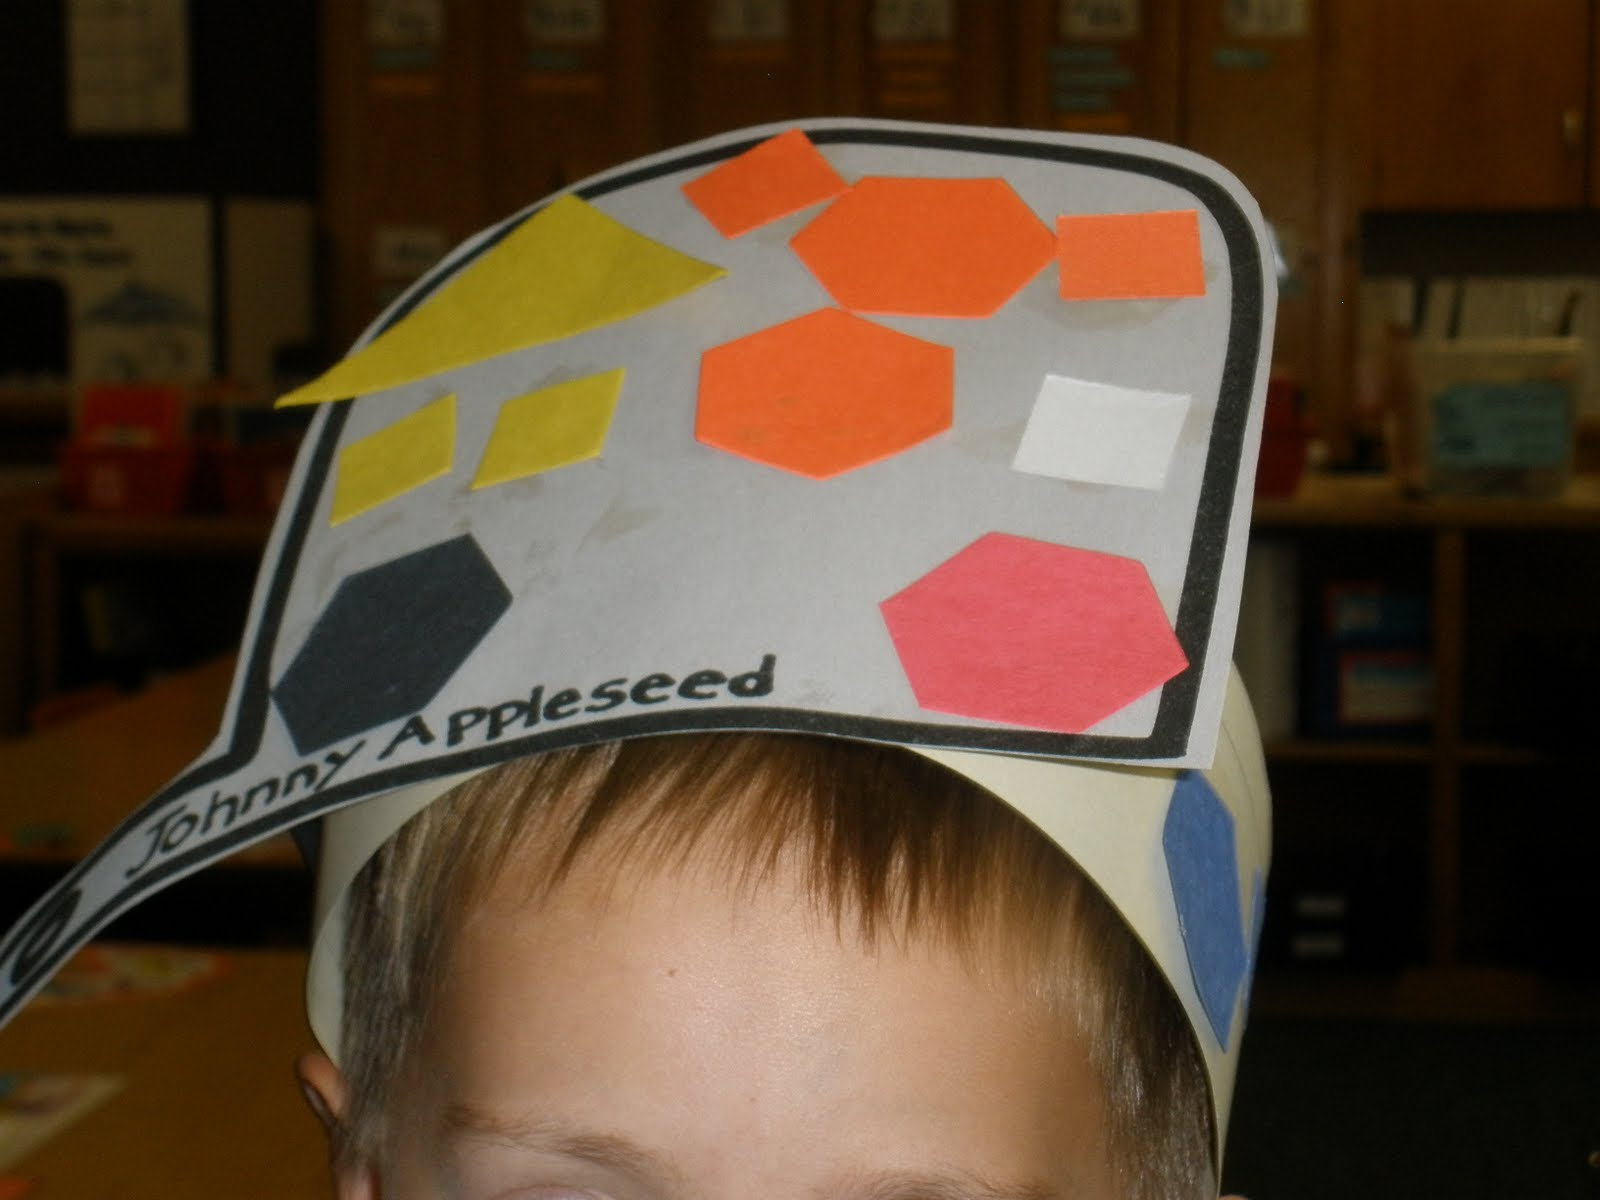 Johnny Appleseed Paper Hat Template http://theartofteachingut.blogspot.com/2011/10/sorting-on-our-johnny-appleseed-hats.html